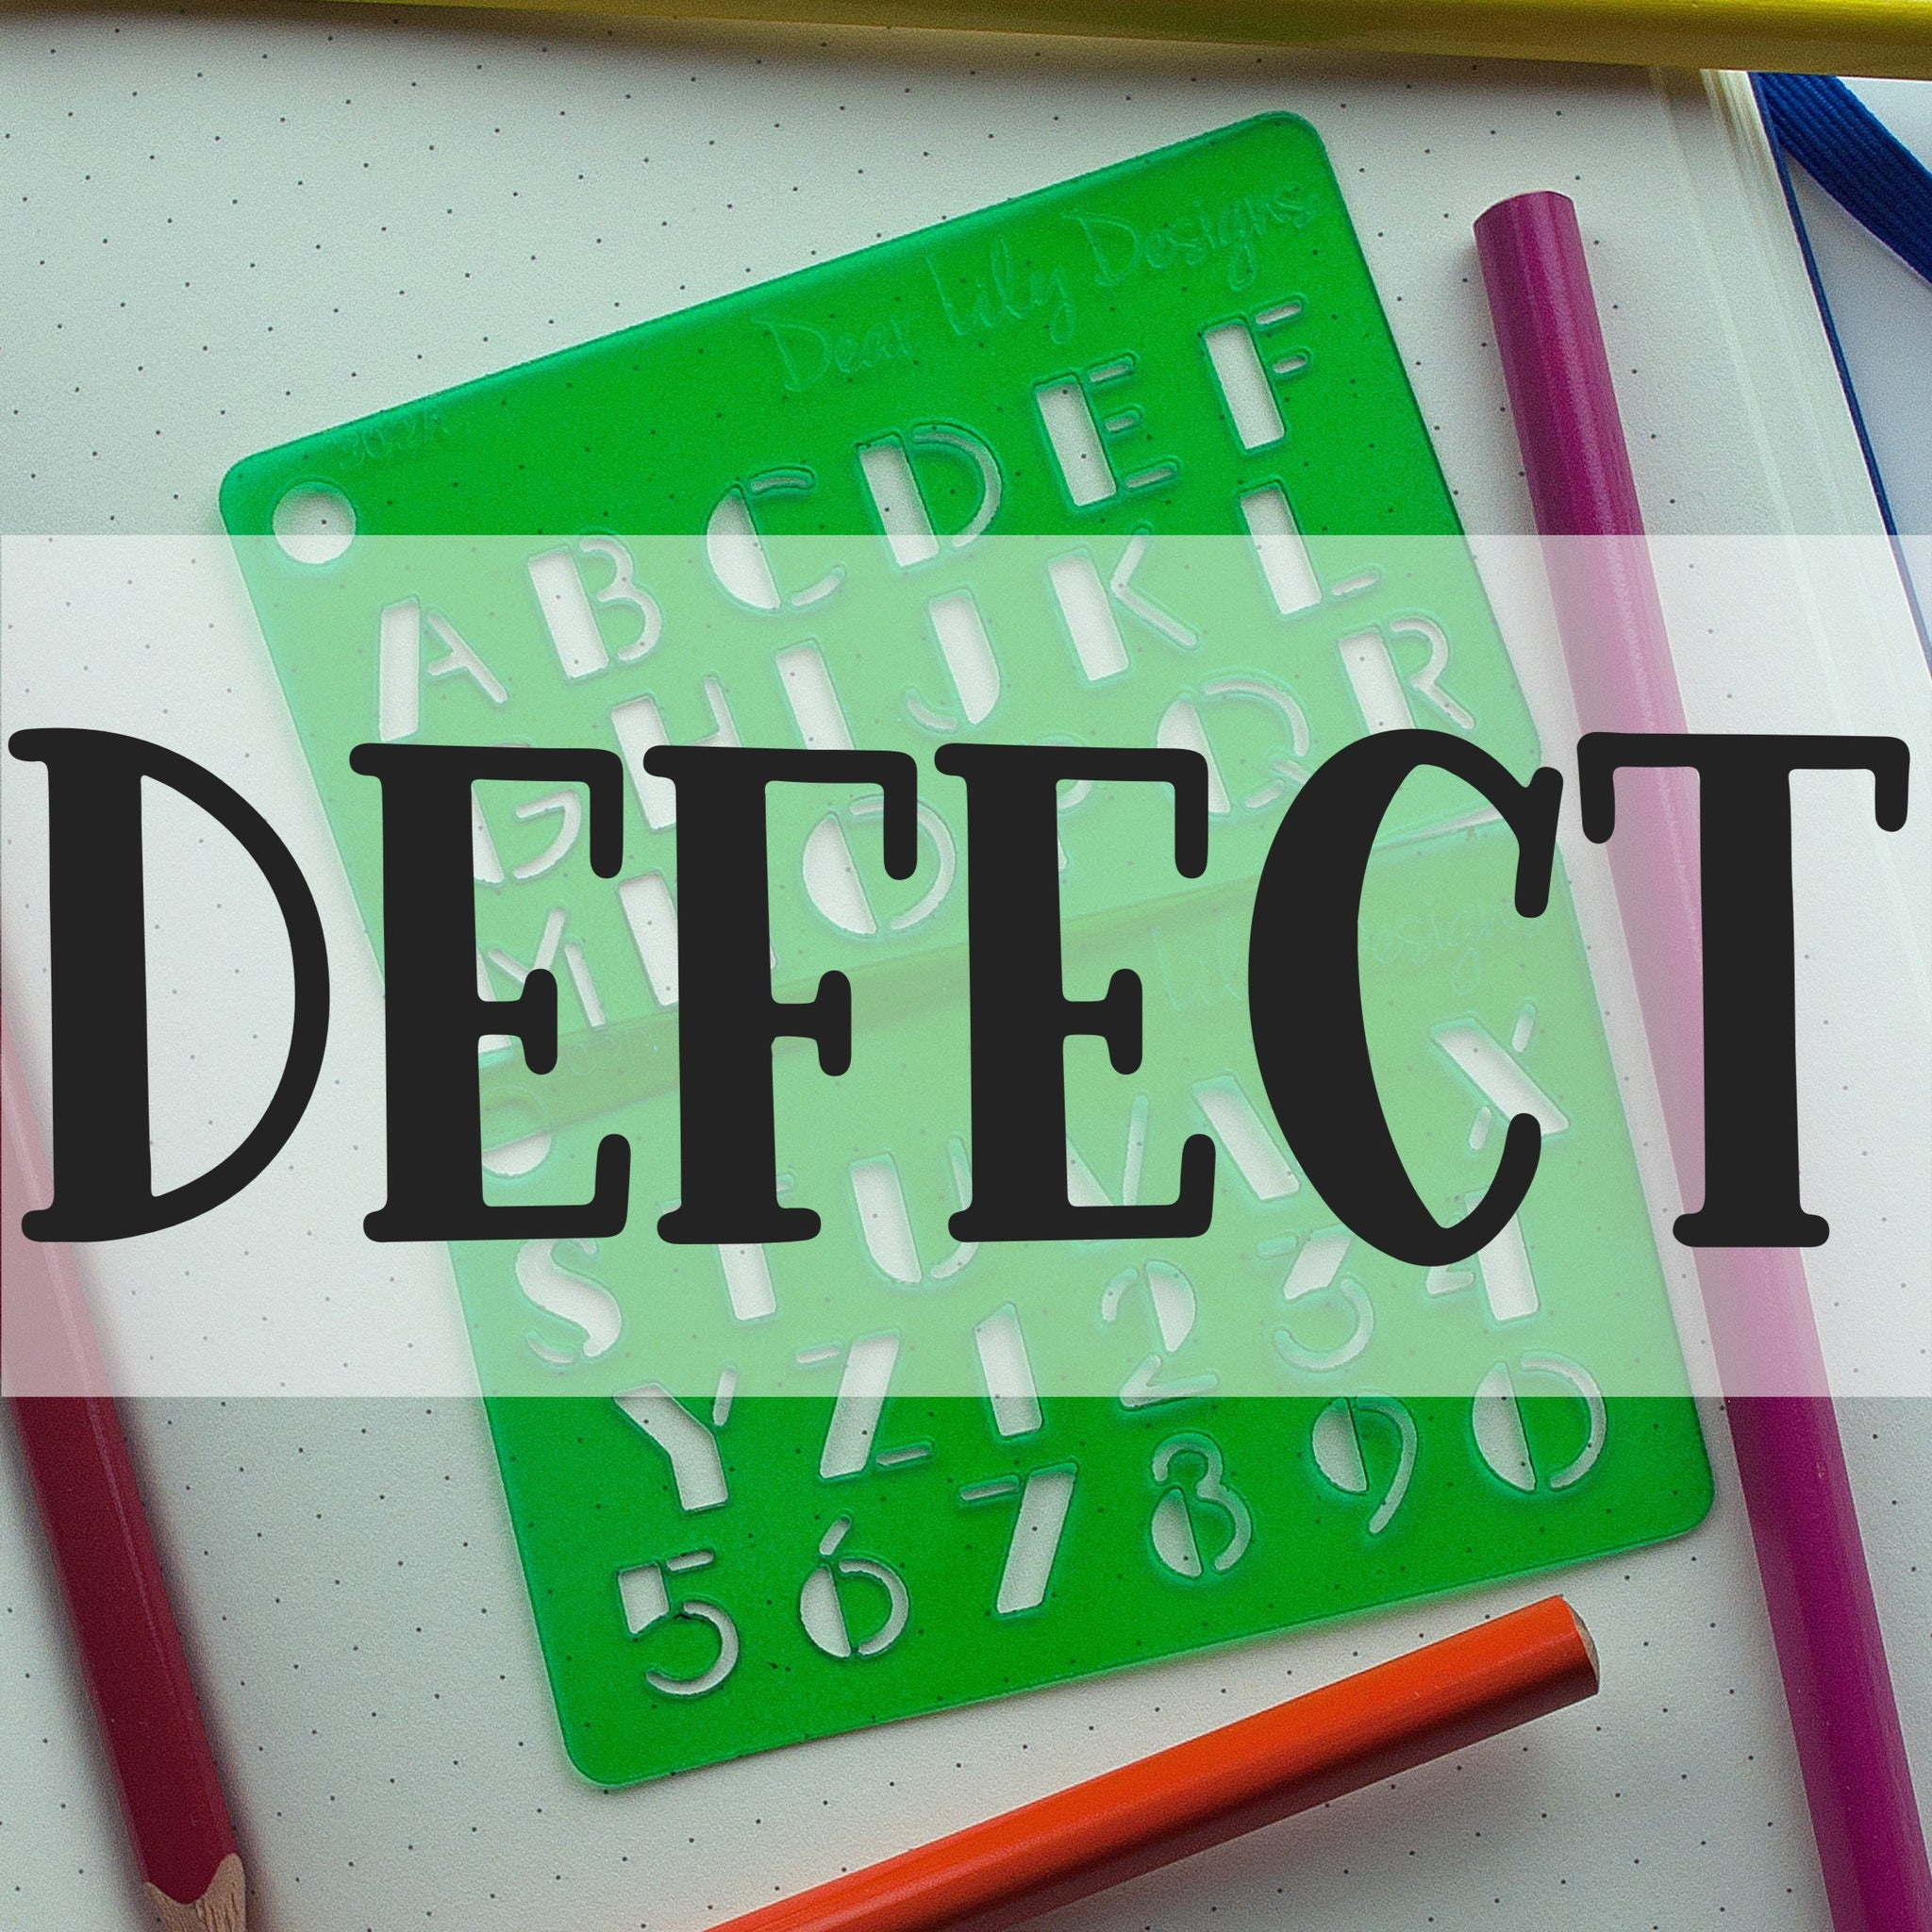 DEFECT 302 Letters & Numbers